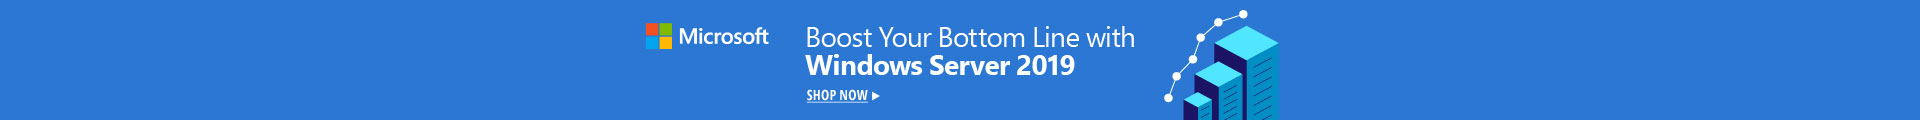 Boost your bottom line with windows server 2019